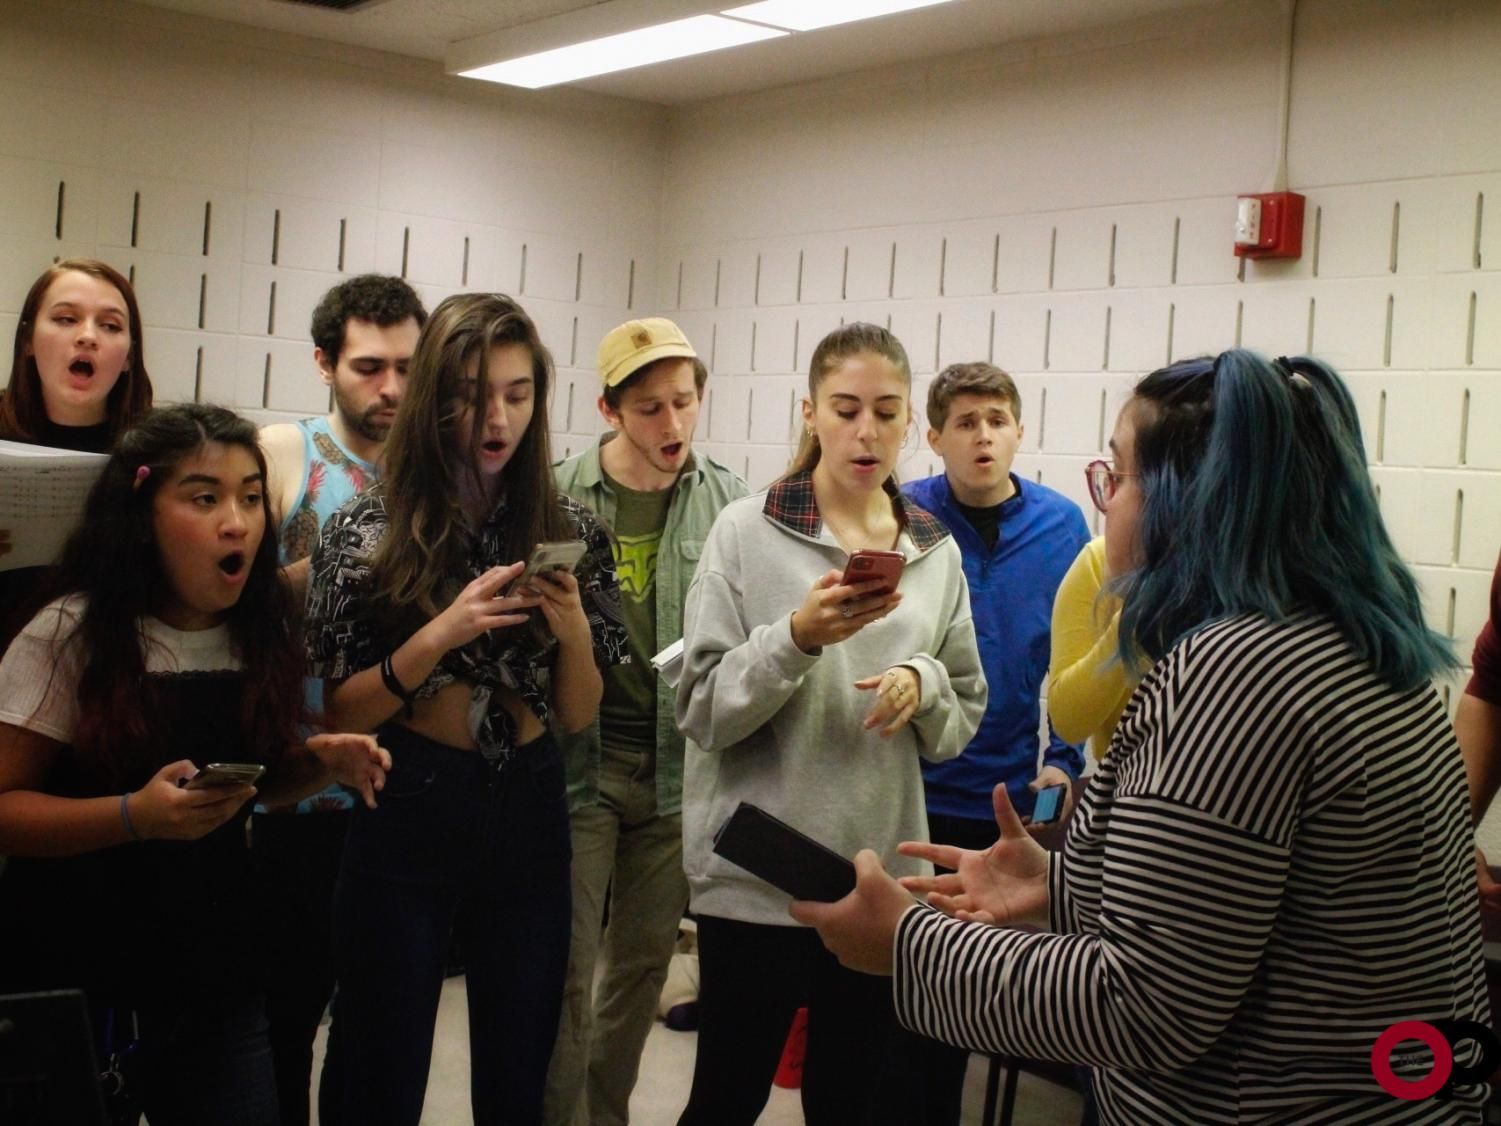 Members of Oakland's a cappella group, Gold Vibrations, rehearse for their 10th anniversary concert. The concert takes place Saturday, Dec. 7.